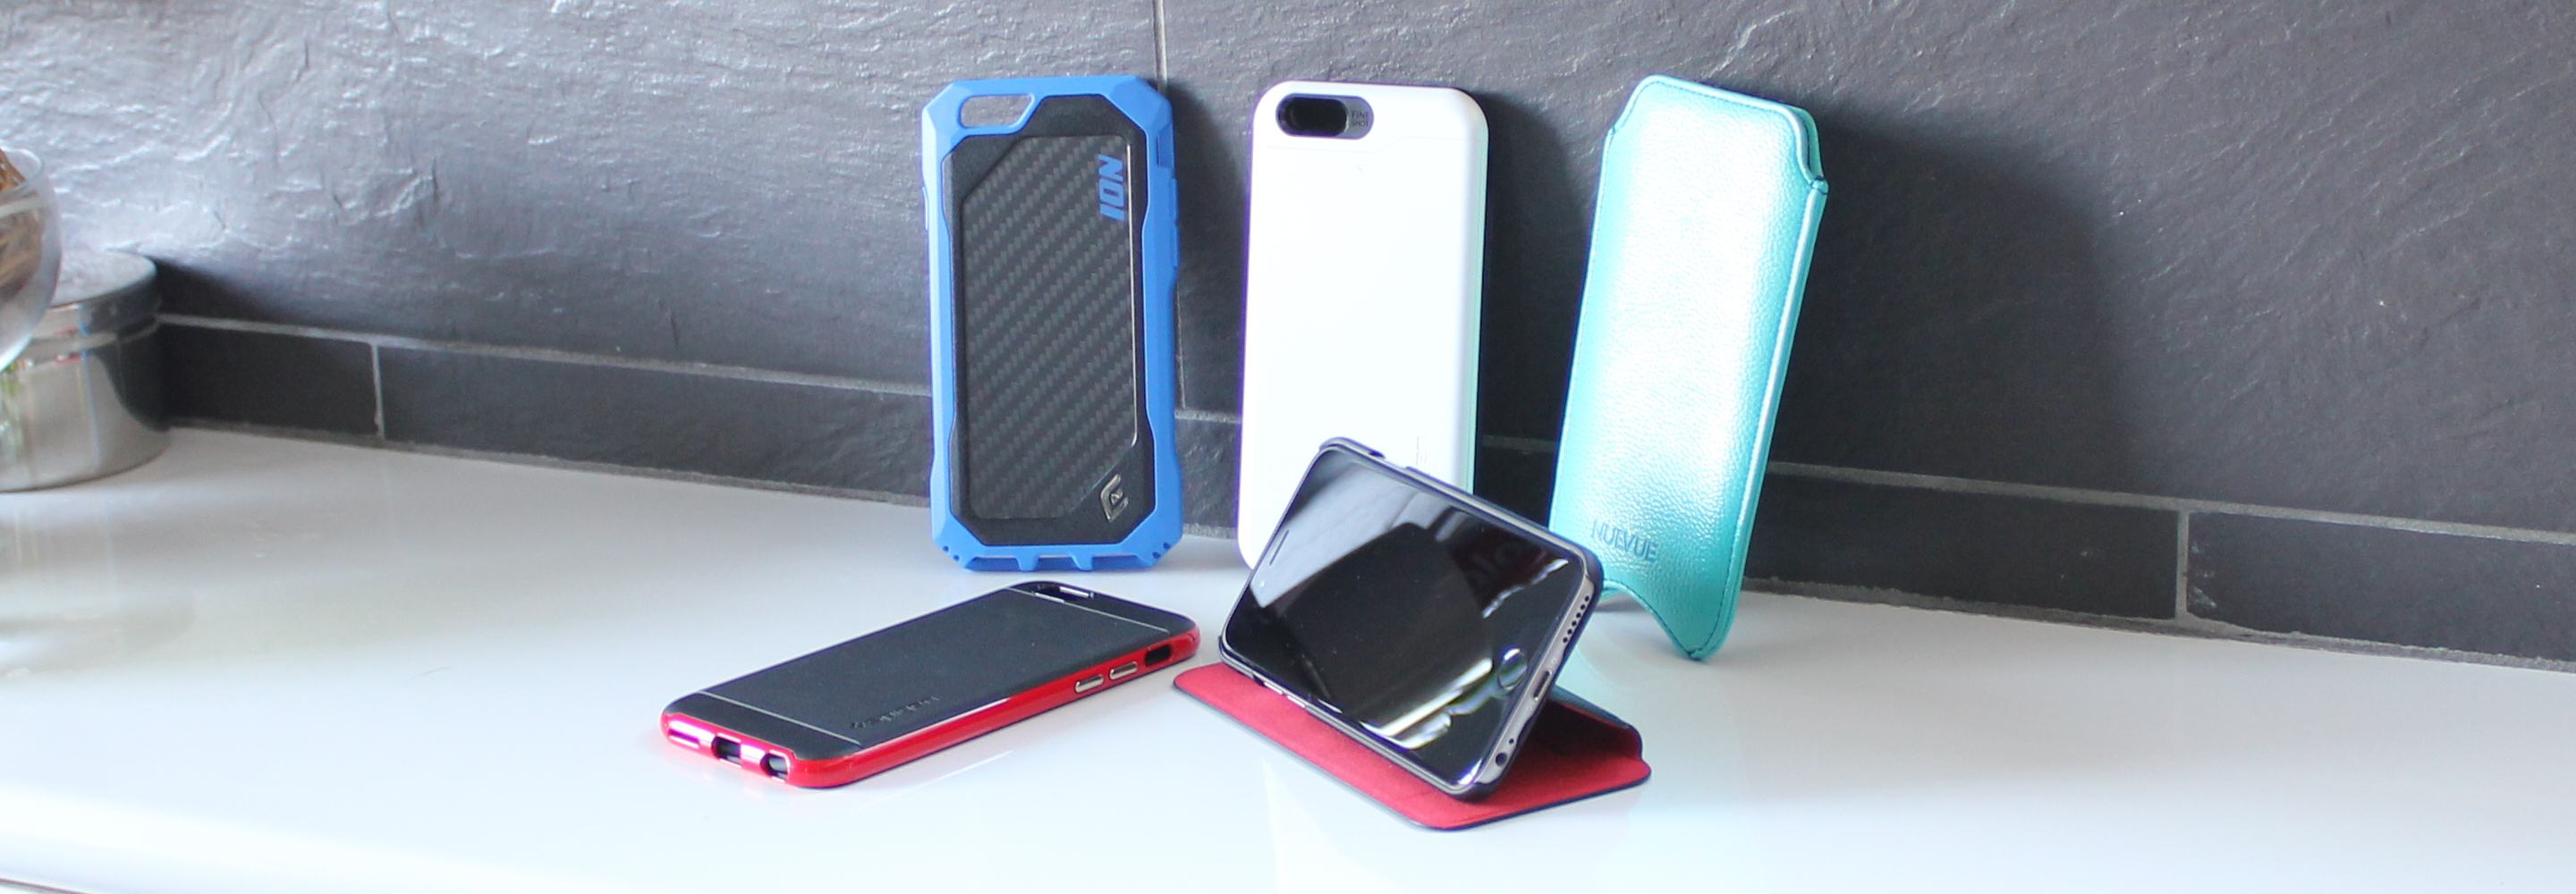 Personalize Your Smartphones & Tablets With These Super-Cool Accessories!